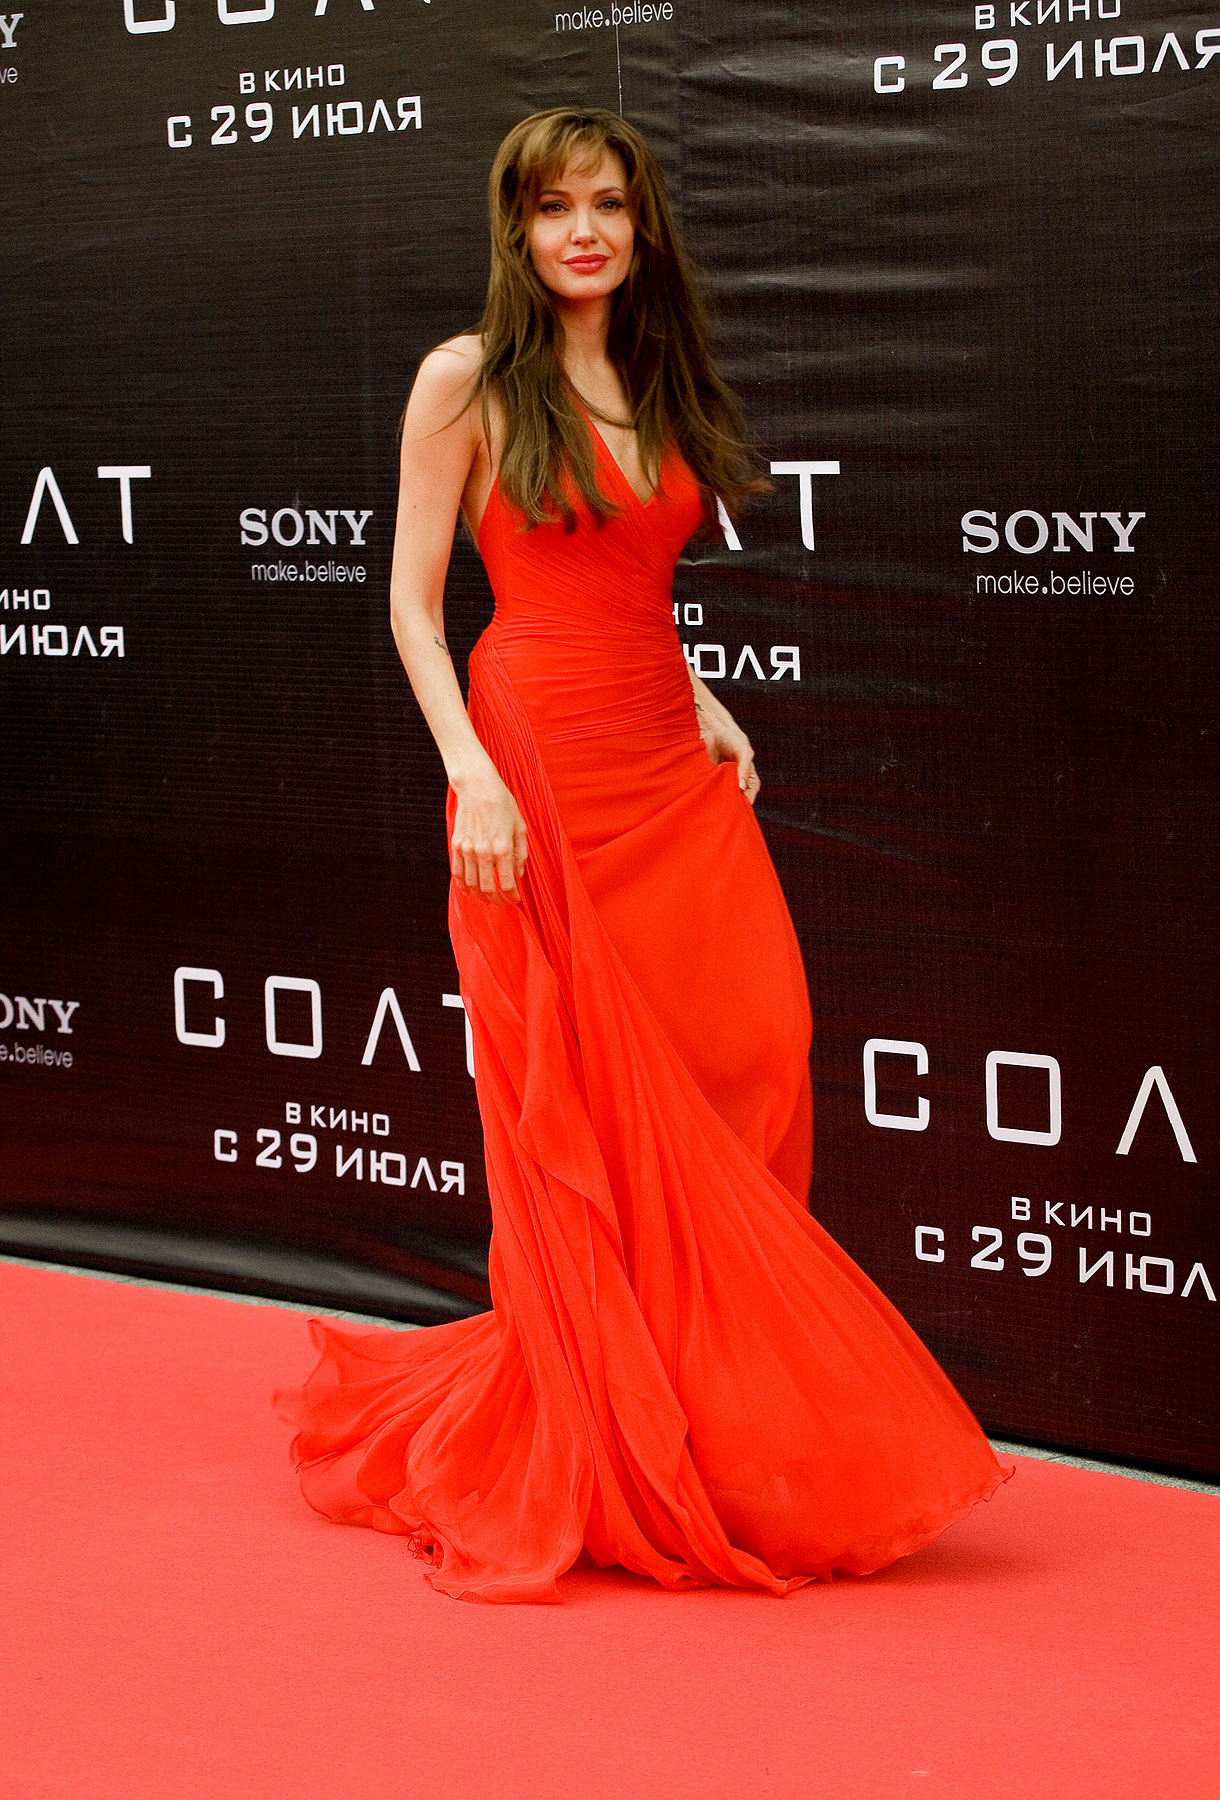 Angelina Jolie Stuns in Red at Russian 'Salt' Premiere (PHOTOS)